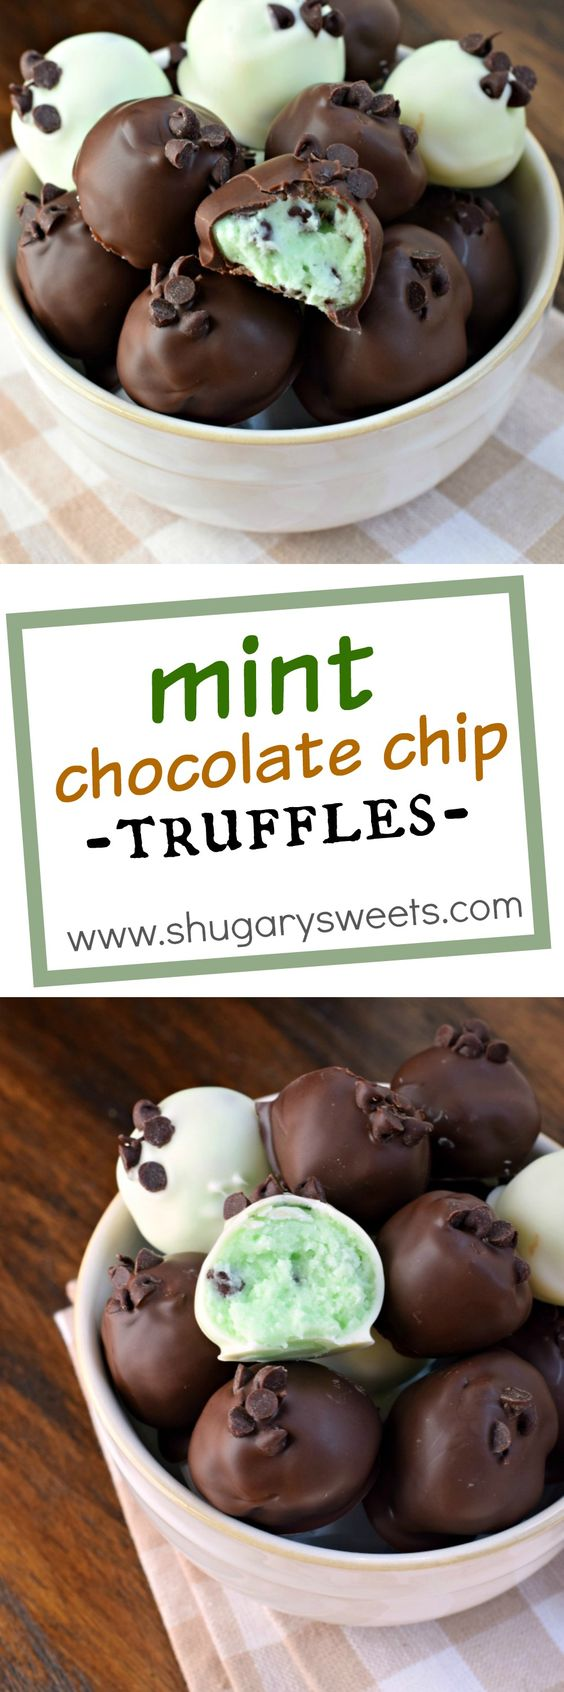 Delicious, creamy Mint Chocolate Chip Truffles recipe! So easy to make too!